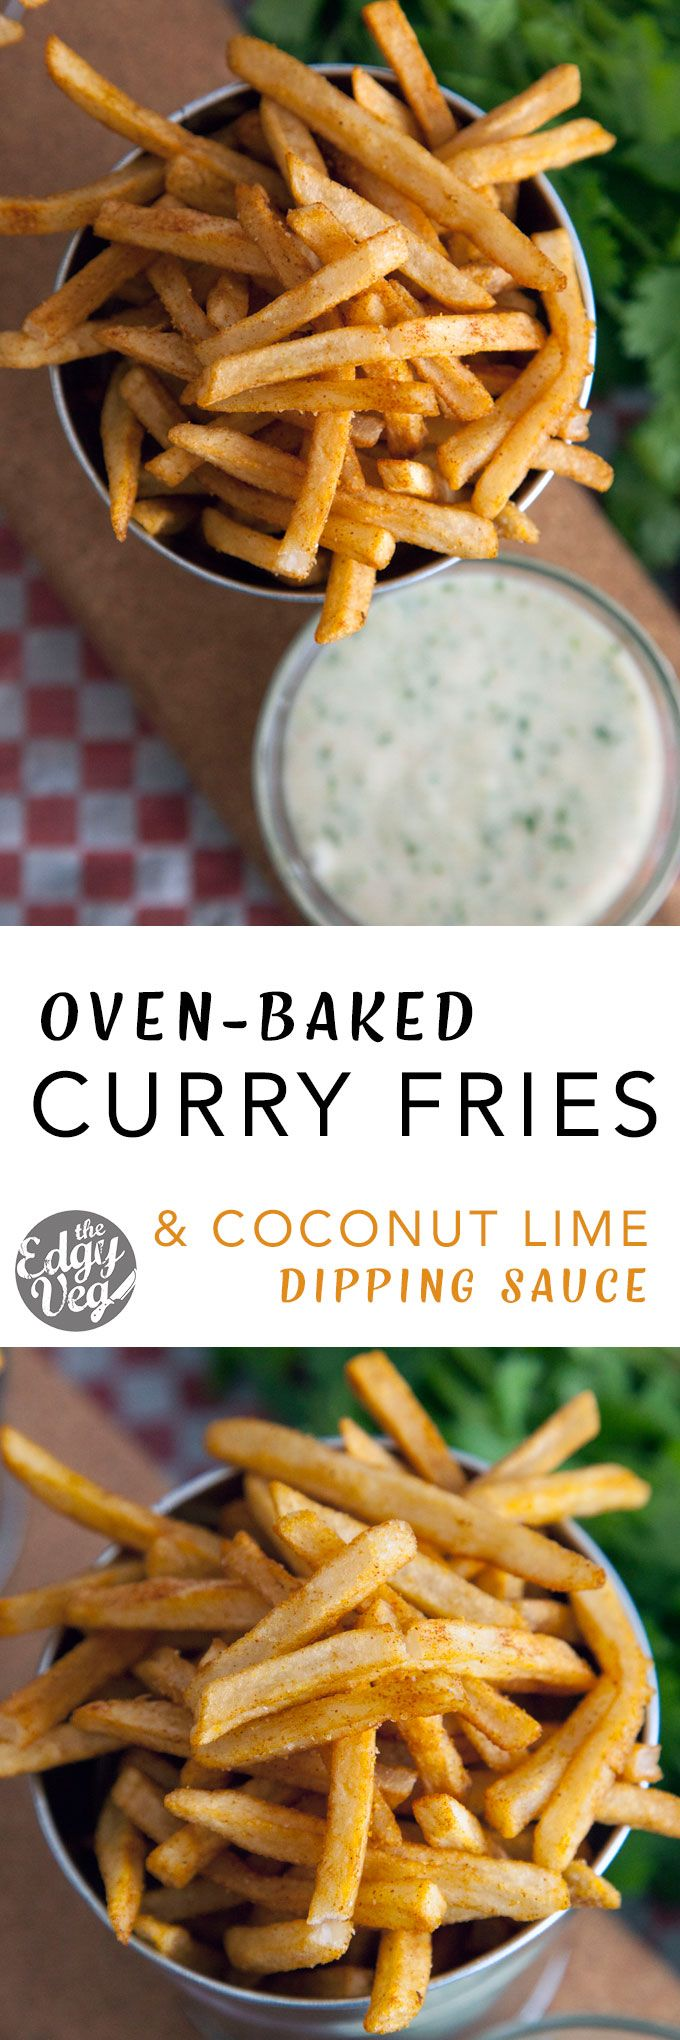 curry fries with coconut lime dip: These curry fries are deliciously crispy and oven baked, so you can eat them to your heart's desire. The mix of aromatic spices give this dish a haute-cuisine feel and taste without too much effort. perfect for Game Night, a lazy night of Netflix and Chill or a quick appetizer with friends.